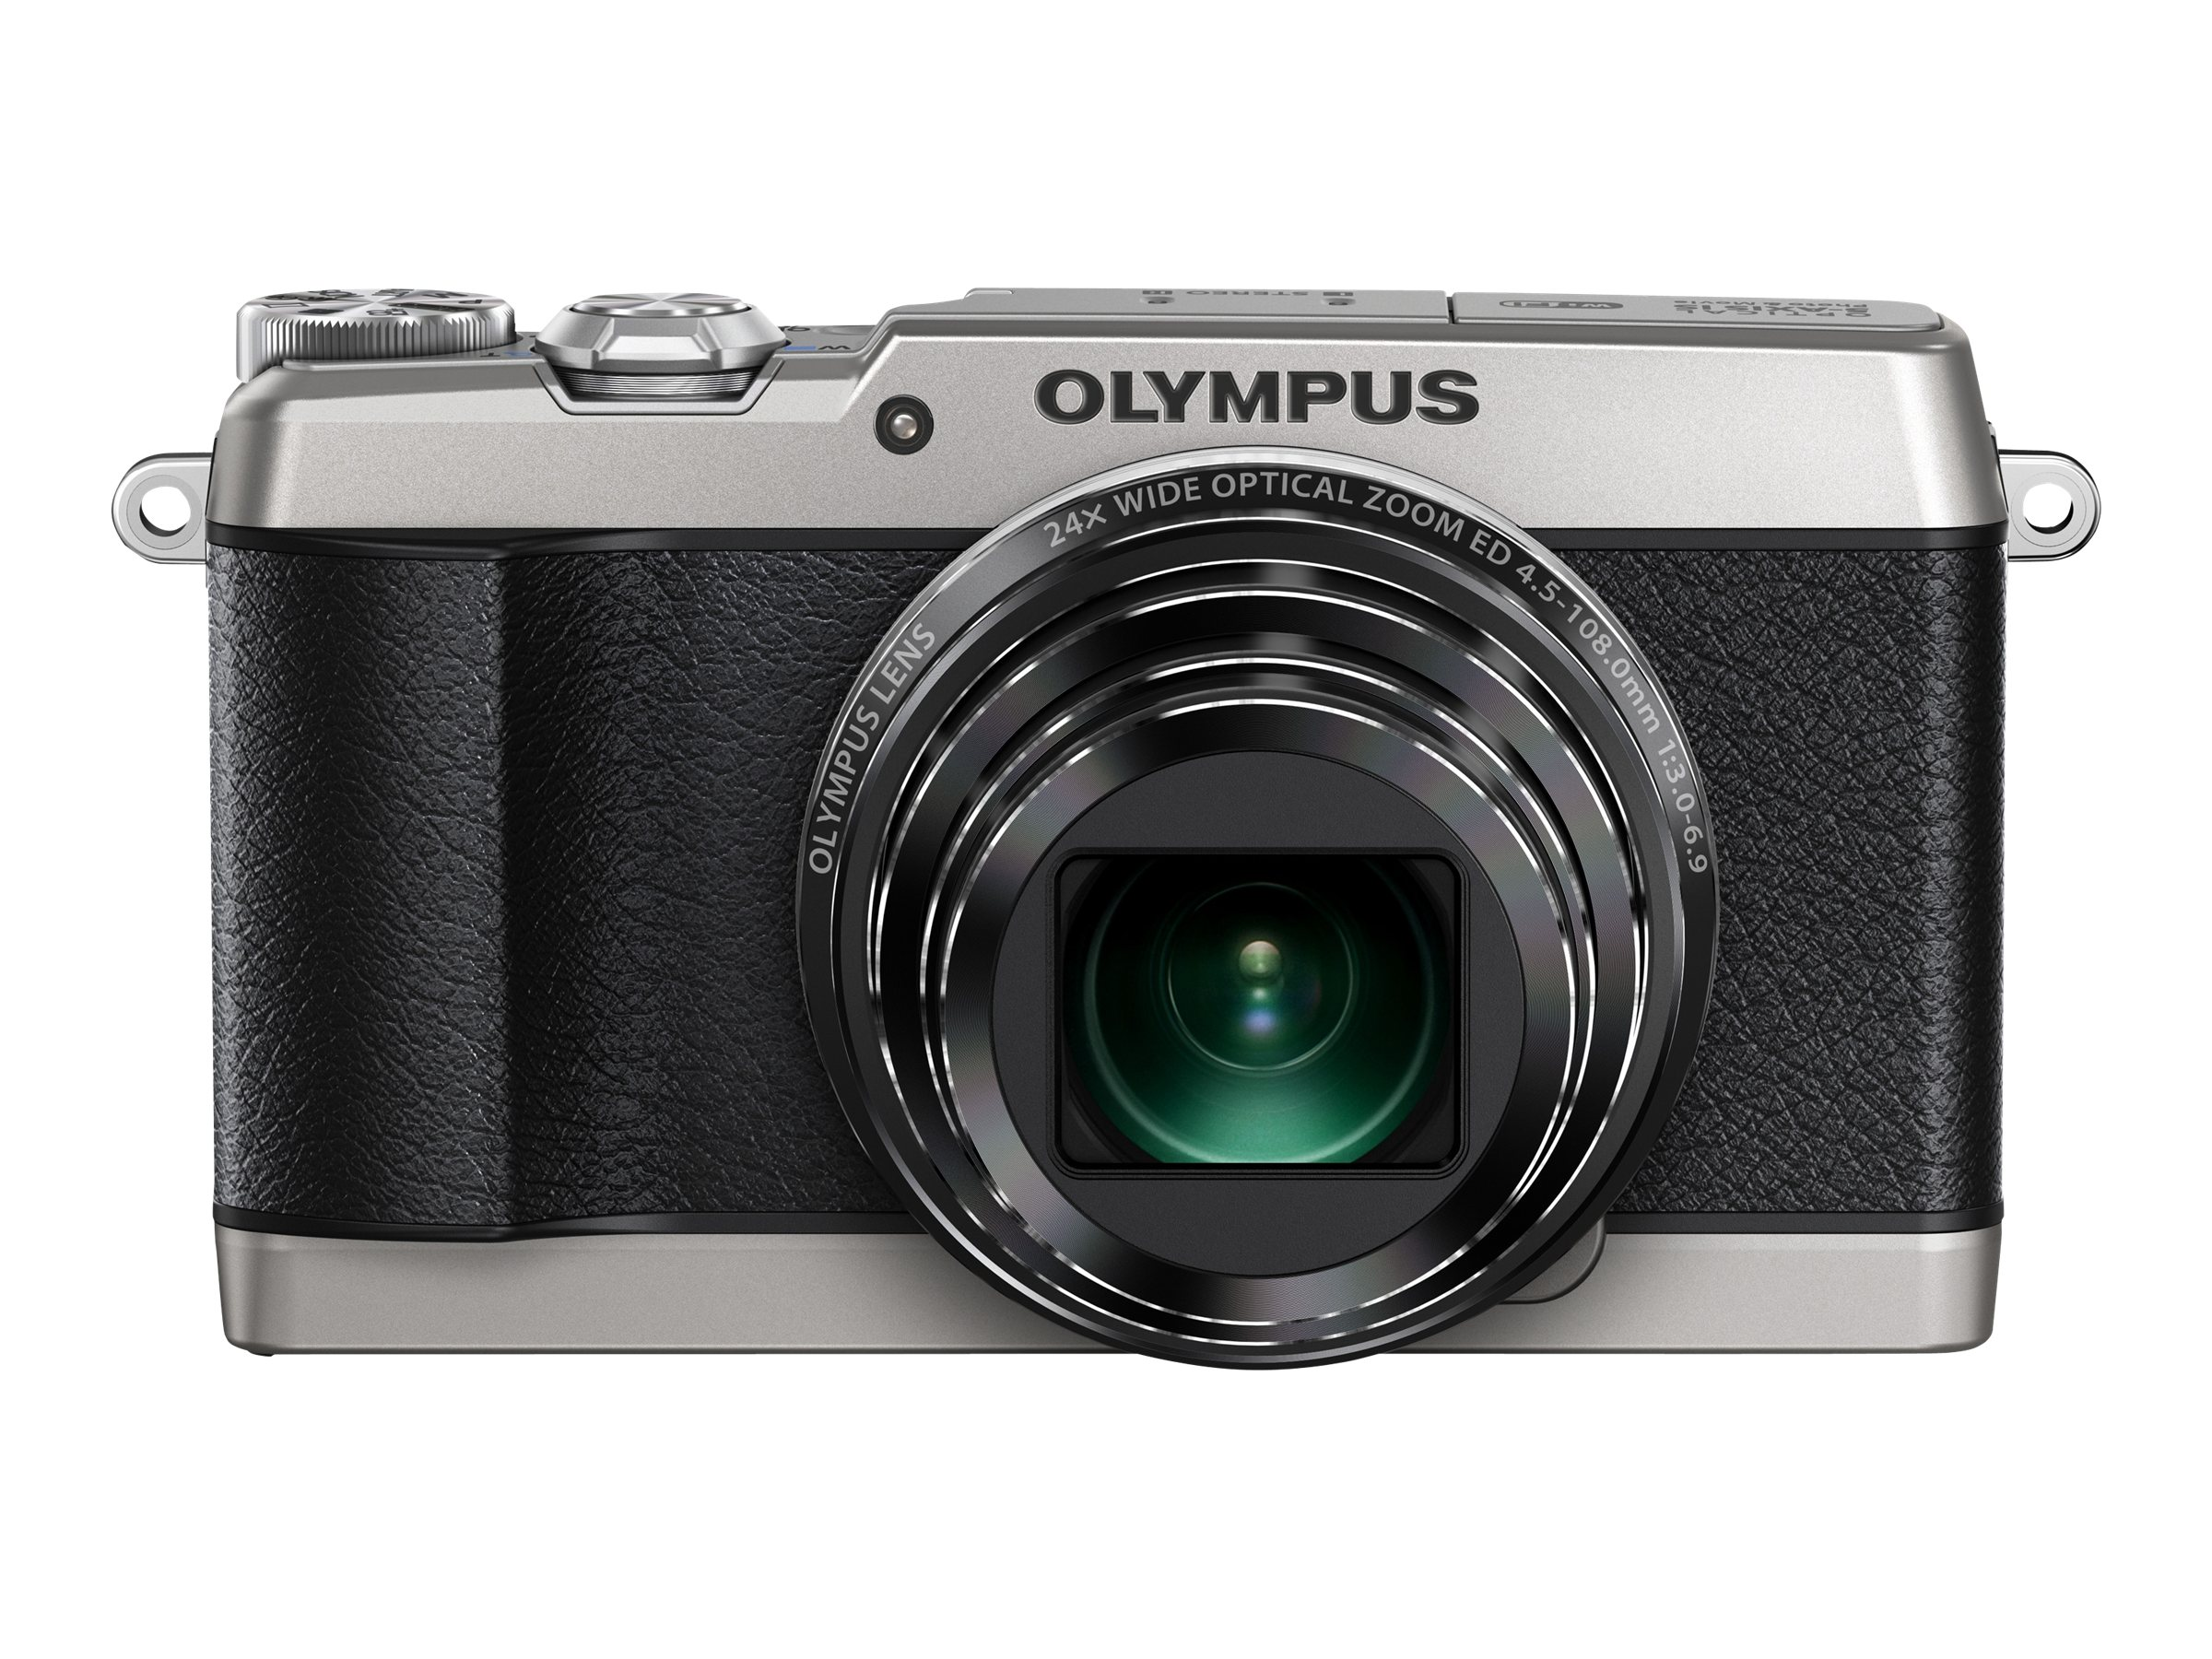 Olympus Stylus SH-1 Digital Camera, 16MP, Silver, V107080SU000